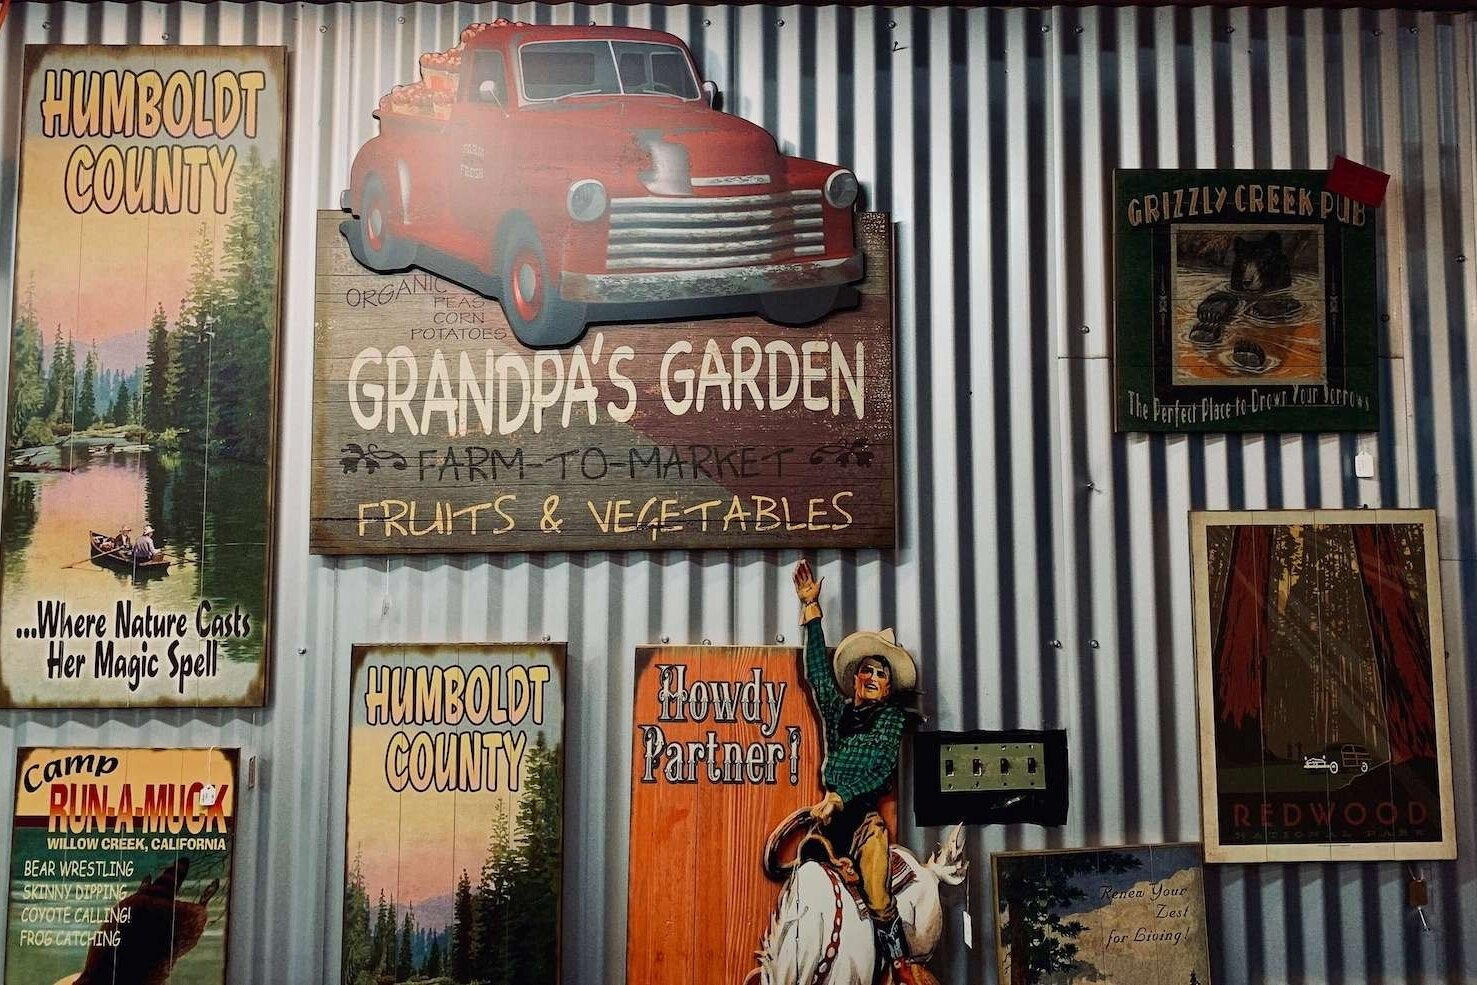 Meissenburg Signs - Welcome to Meissenburg Designs - innovators of the vintage sign business. 100% Made in the USA certified, we manufacture wood and metal signage with a classic appeal that can be personalized.